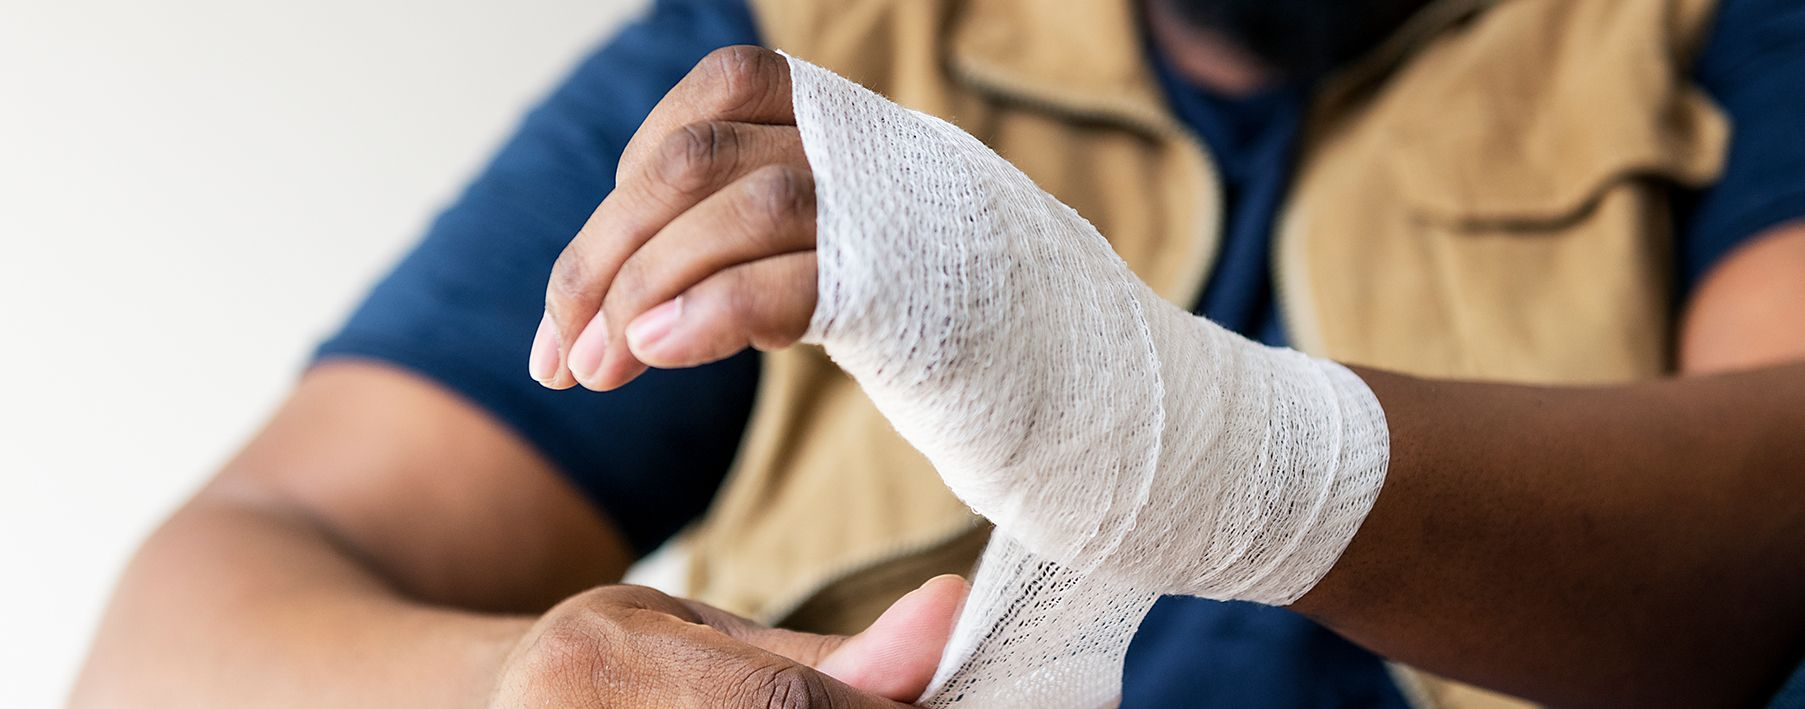 A person wearing a cast on their hand